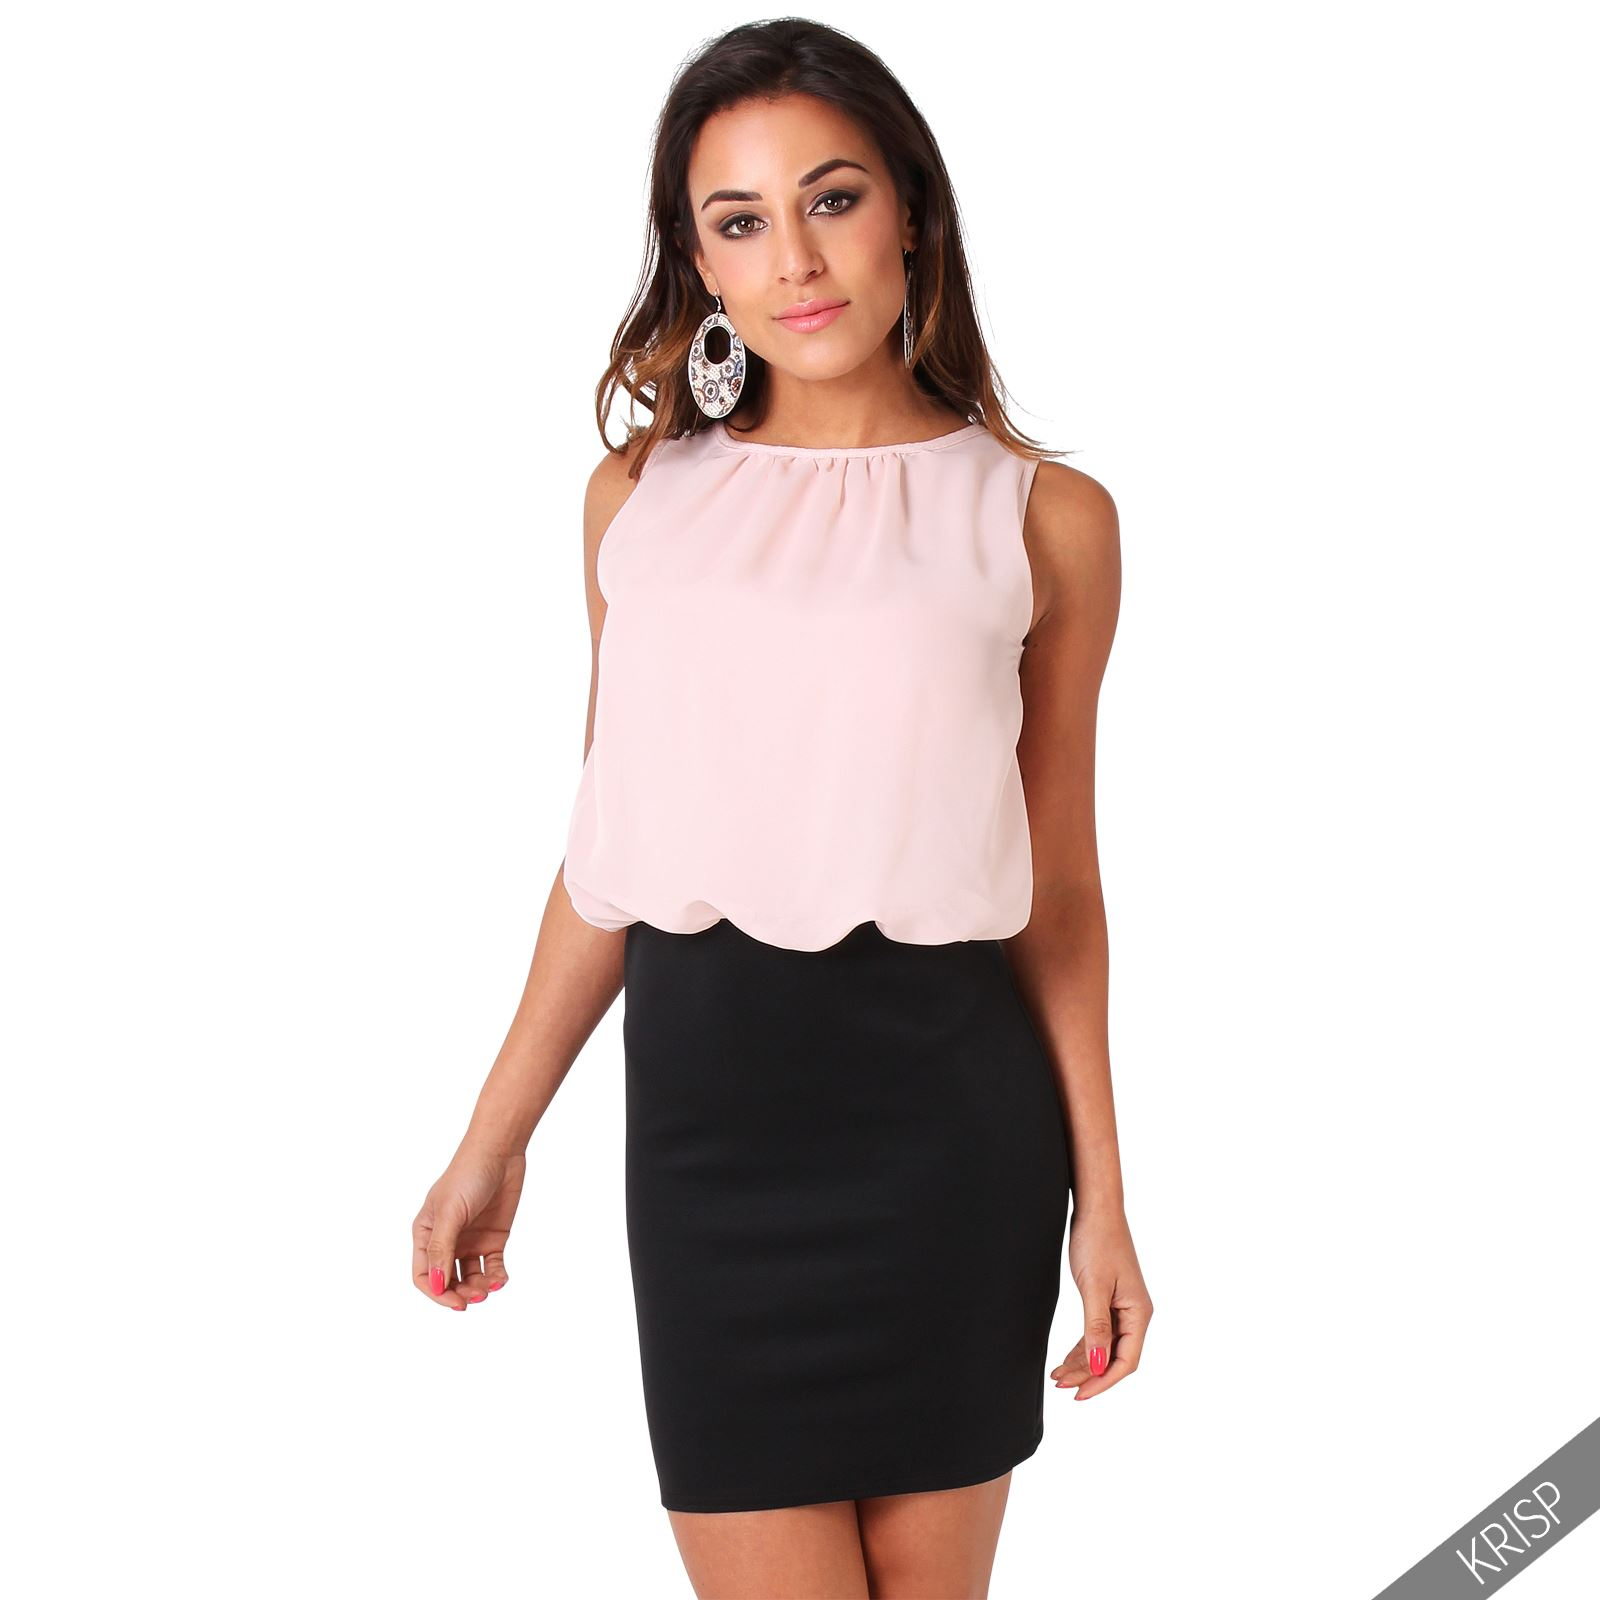 Wide range of fashionable cocktail party dresses are available for women. You can get club, cute sexy dresses for party and also fashion leggings for long evening in .